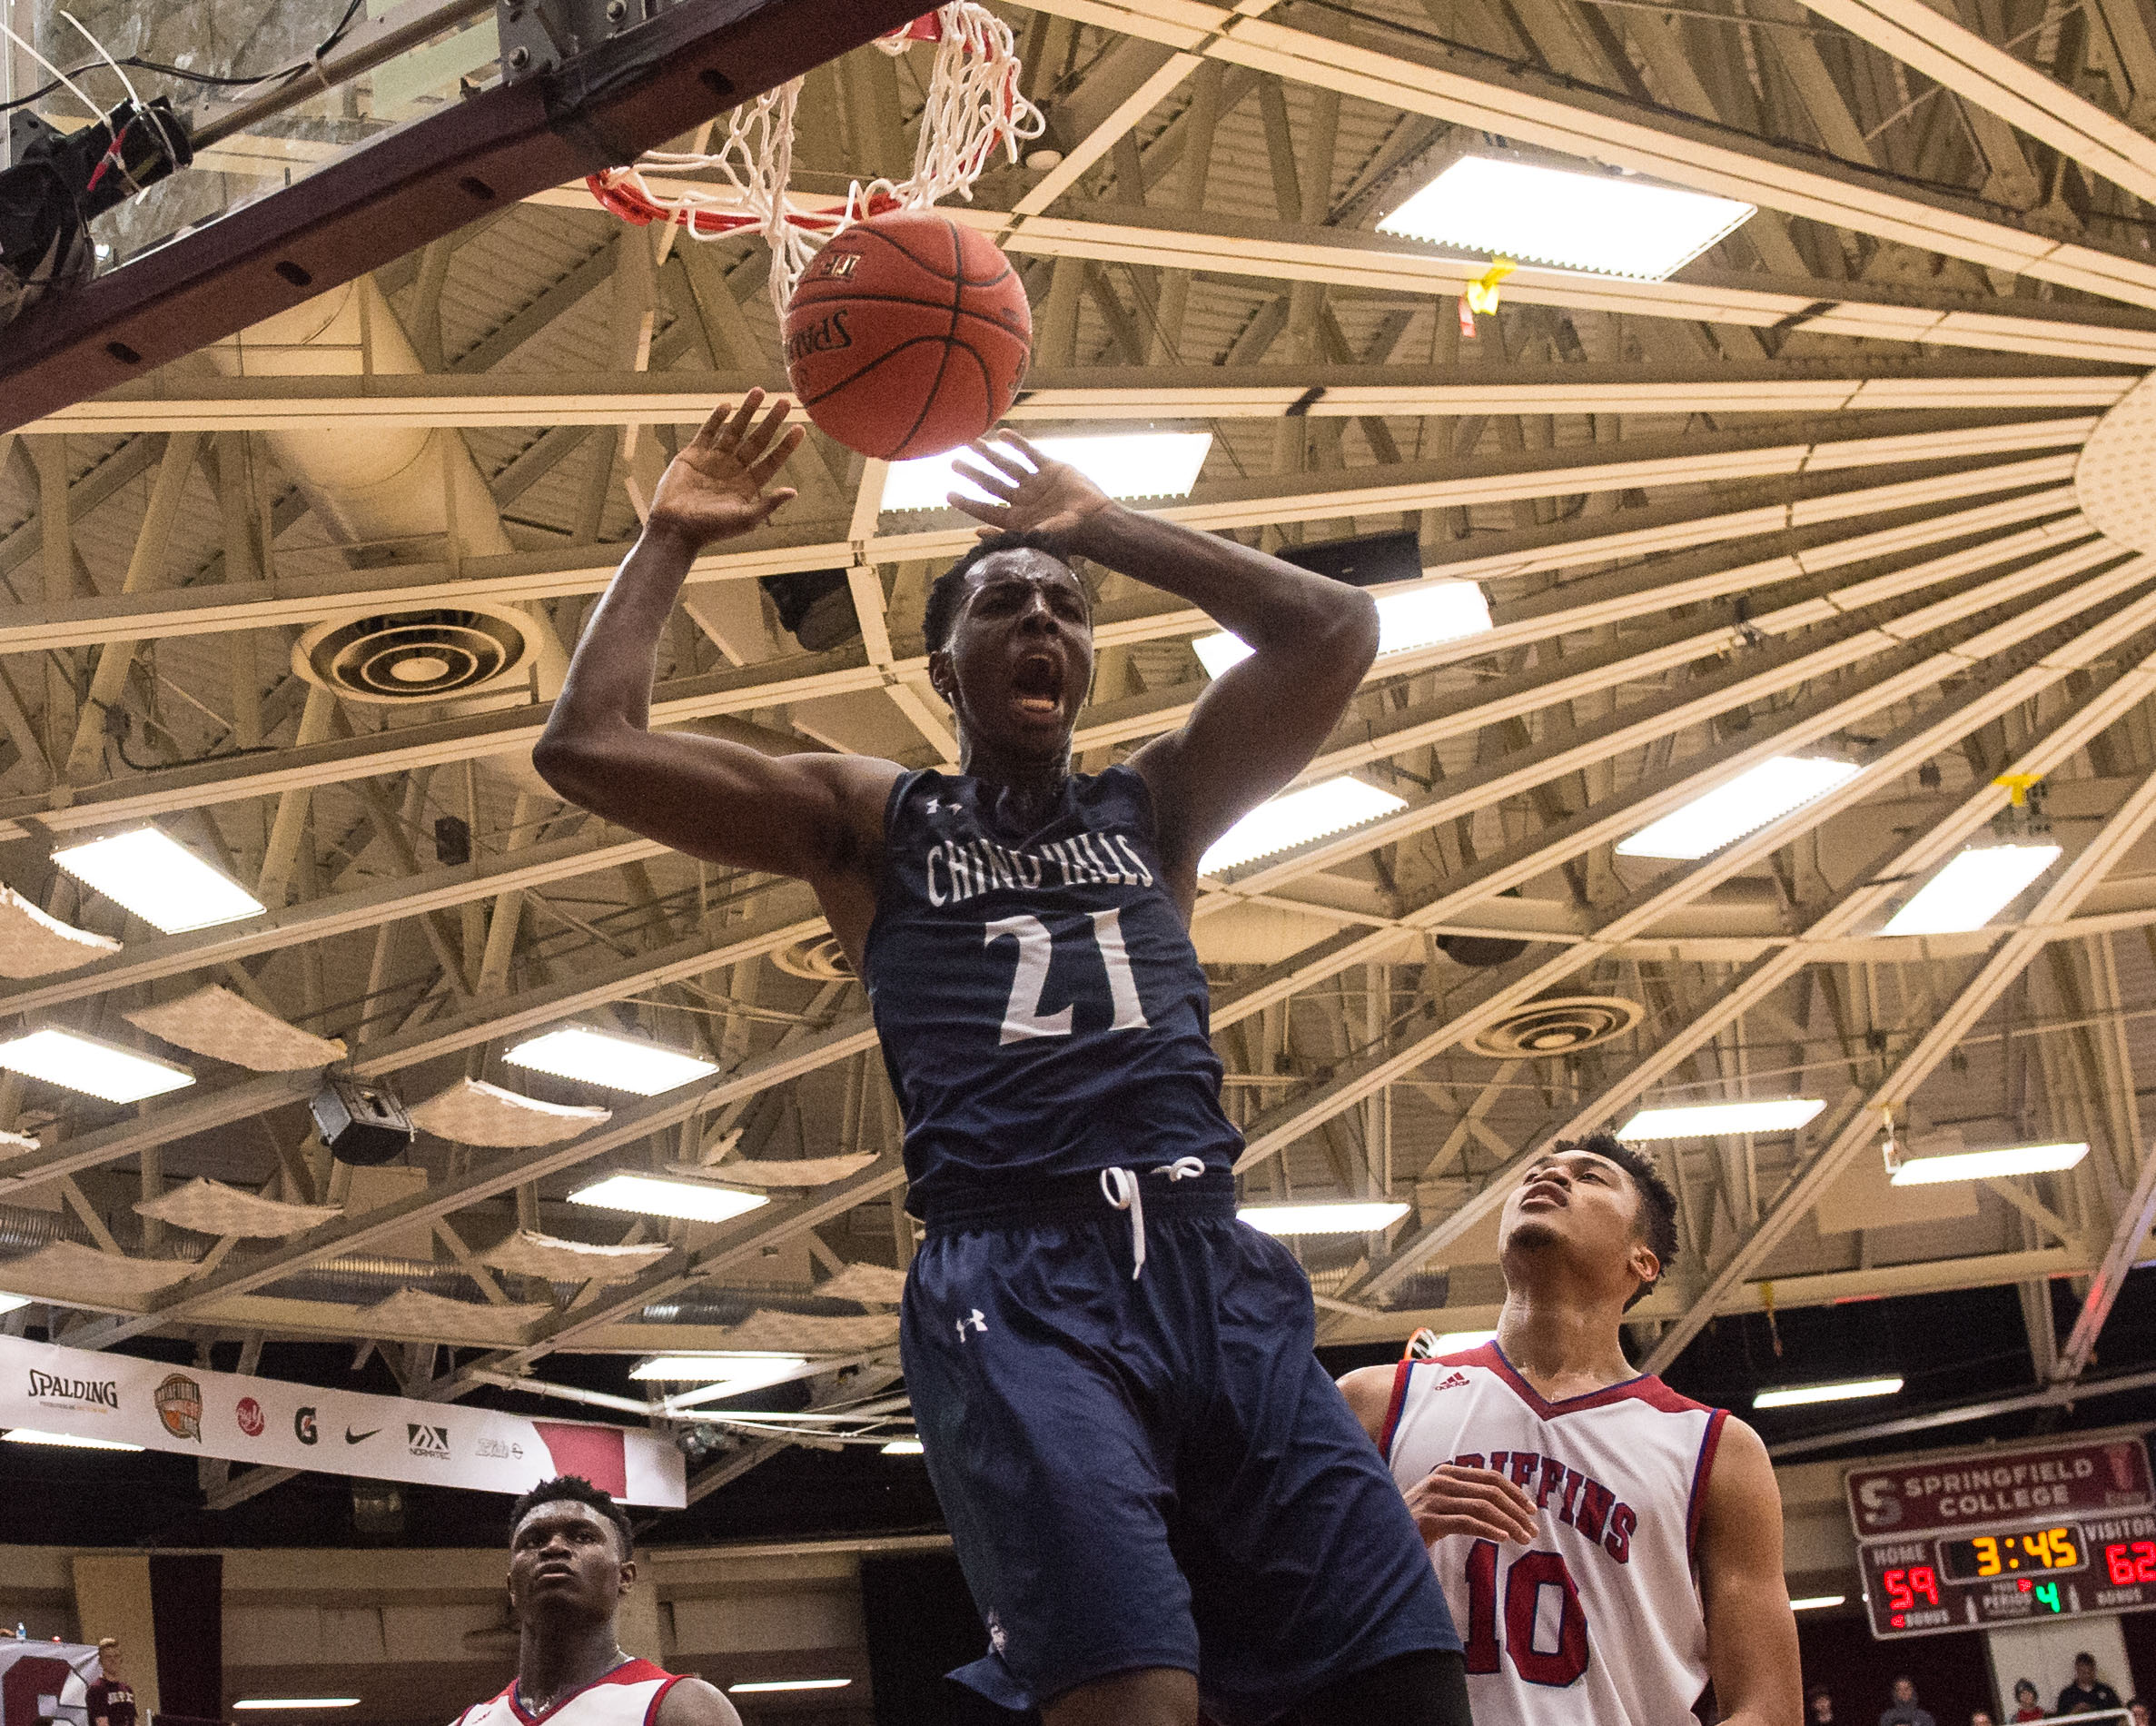 Jan 13, 2018; Springfield, MA, USA; Chino Hills High School, CA Huskies power forward Onyeka Okongwu (21) dunks the ball against Spartanburg Day School, SC Griffins at Springfield College. Mandatory Credit: